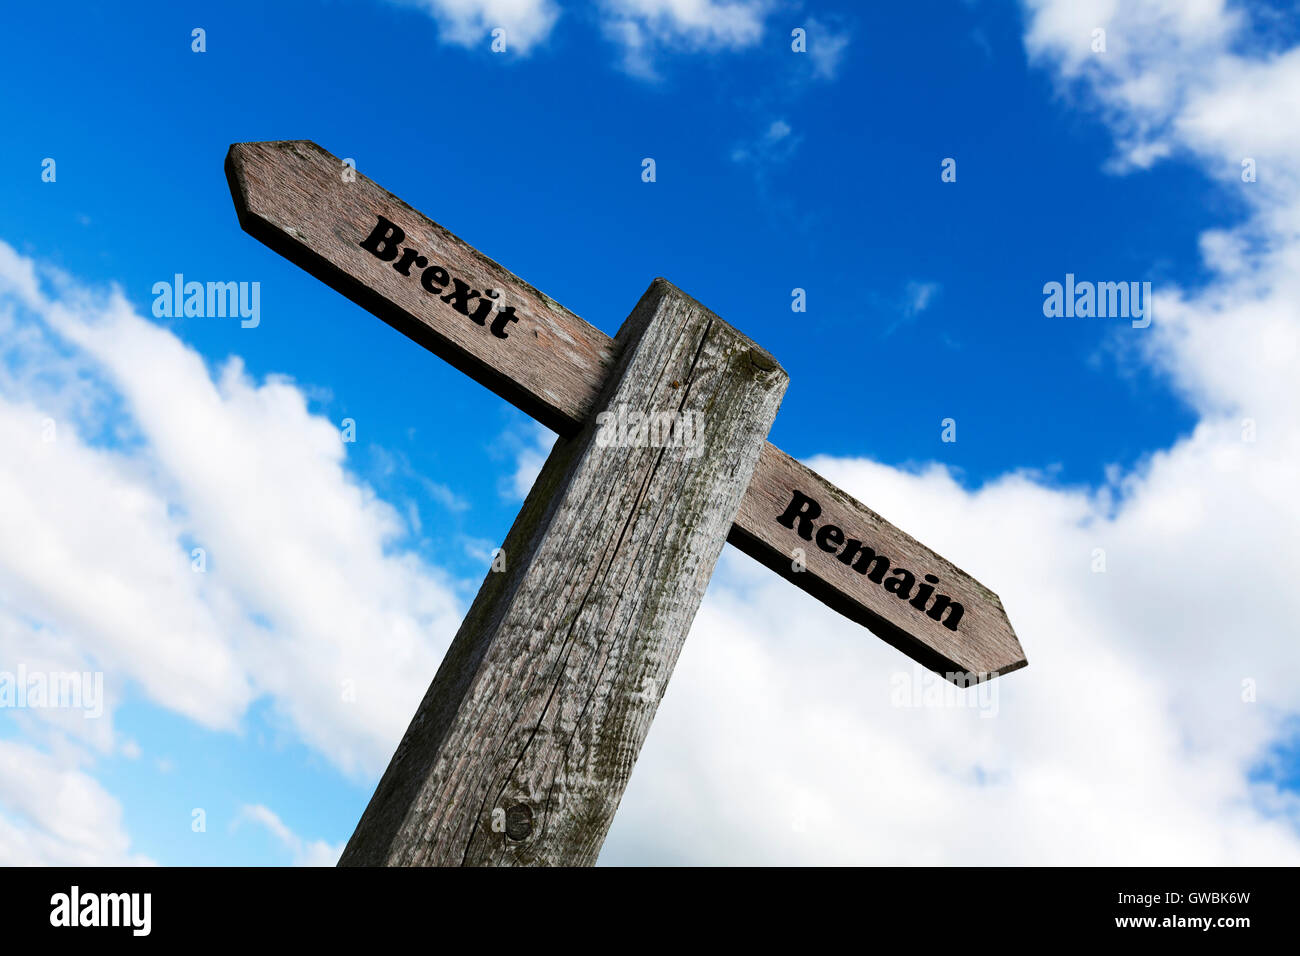 Brexit remain sign UK vote referendum choices words direction directions choice option options choose way in life - Stock Image